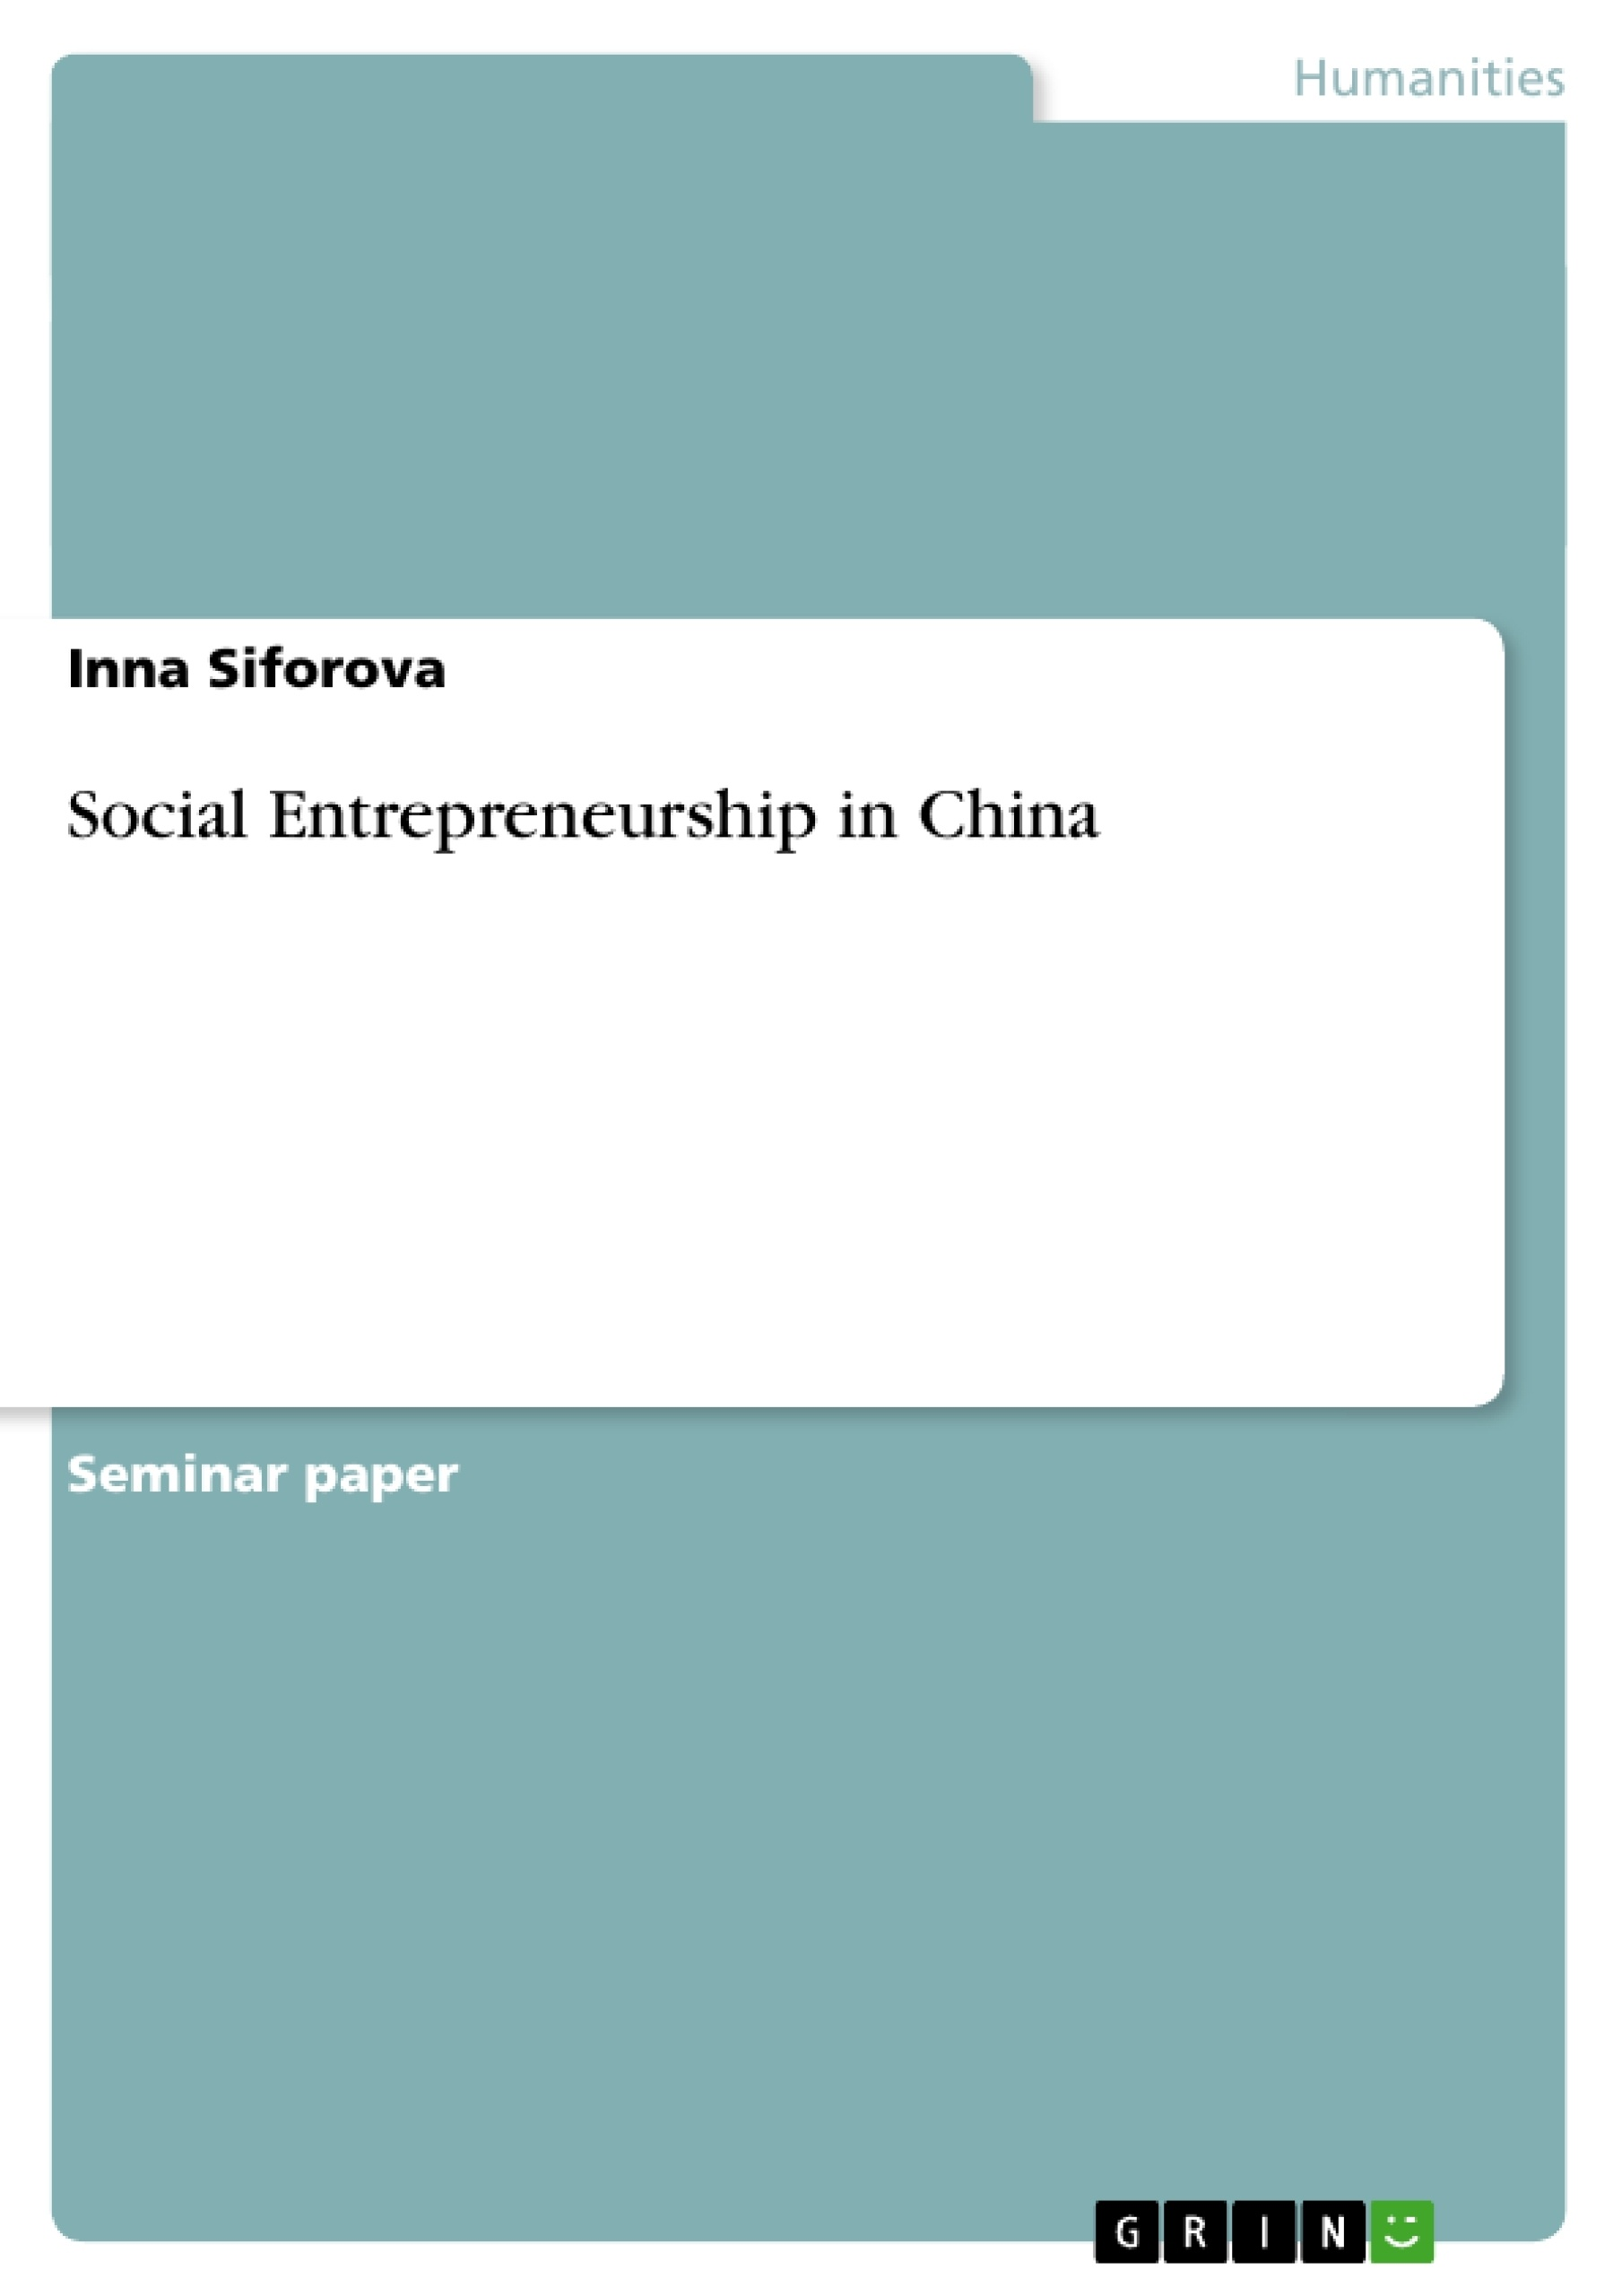 Term papers on entrepreneurship